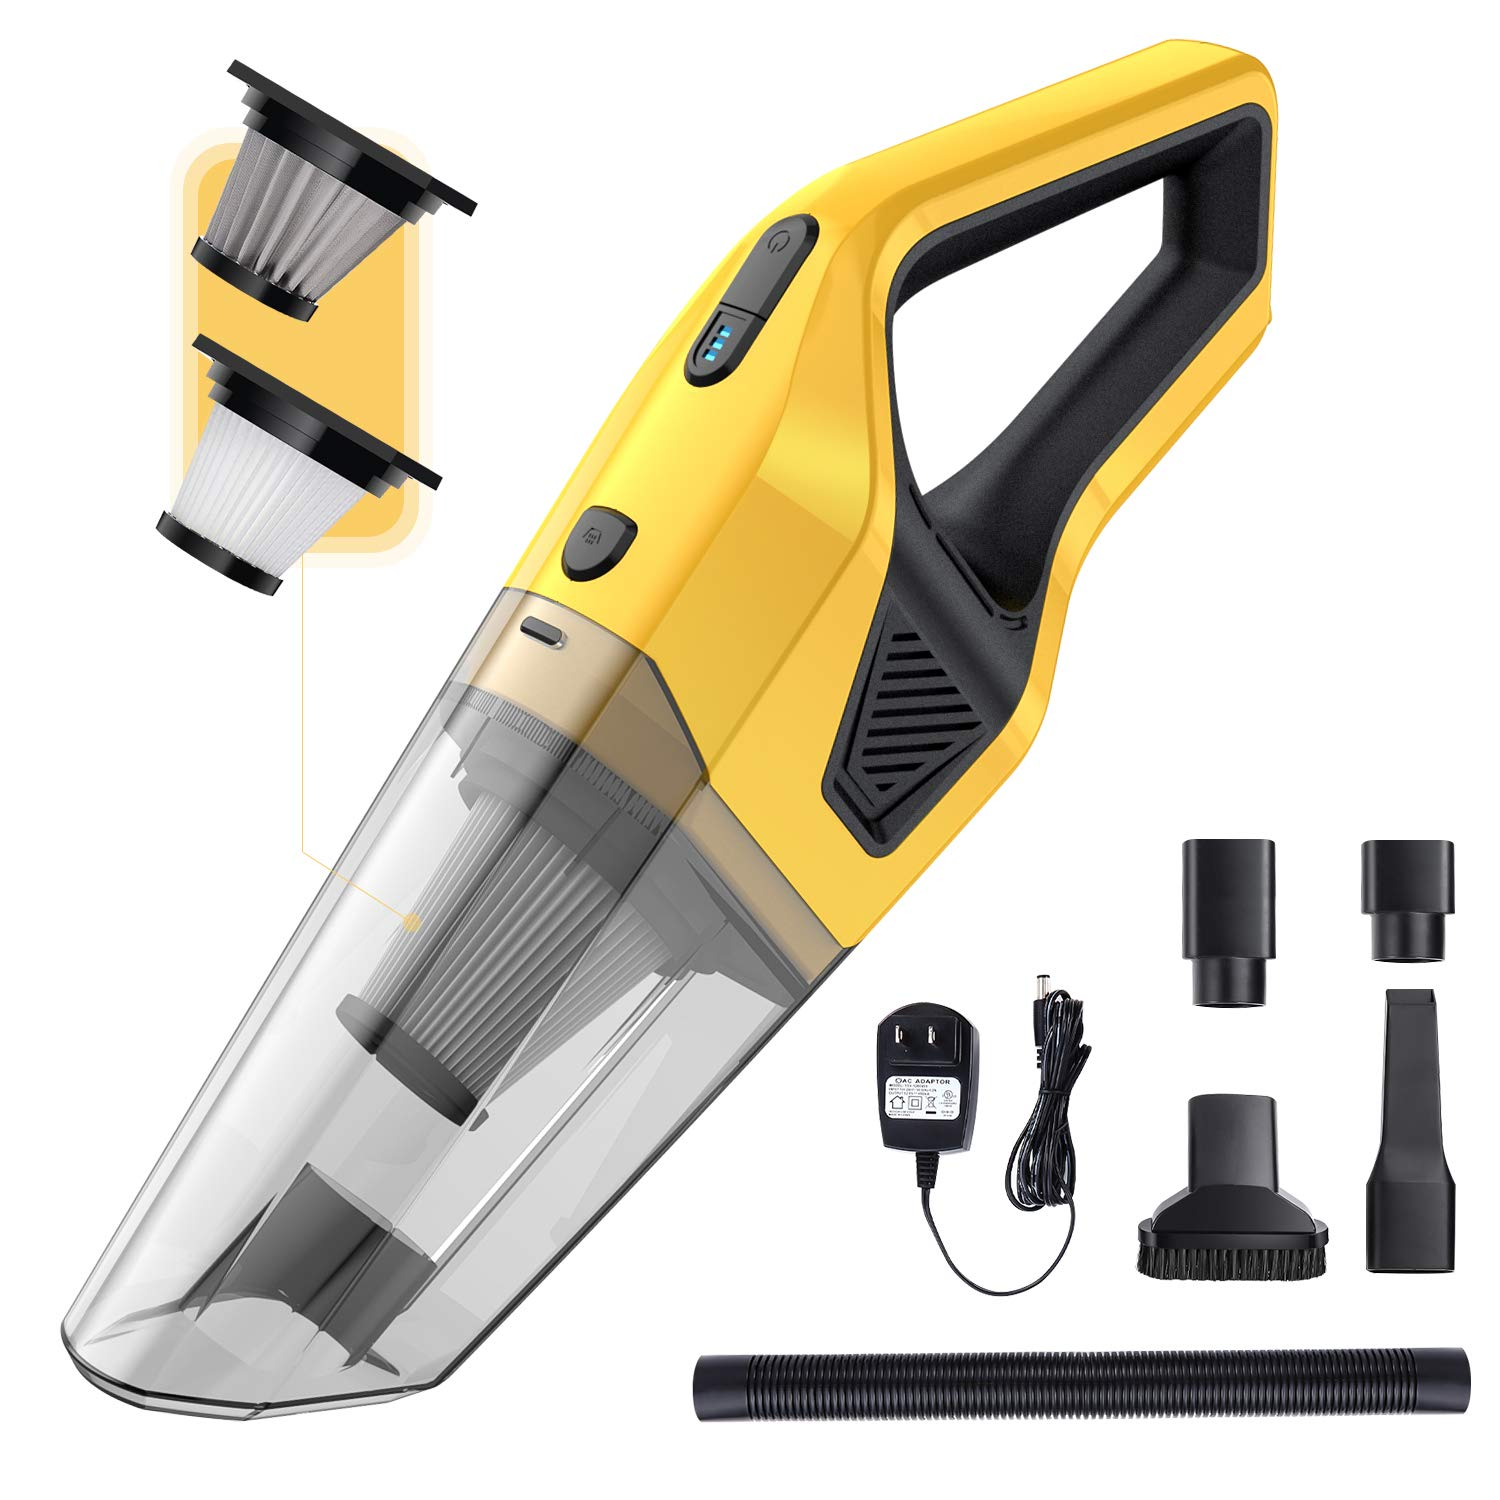 AIKON Handheld Vacuum Cordless, Portable Vacuum Cleaner, with Powerful Suction, Wet and Dry Vacuum Cleaner for Car/Home/Kitchen. (Yellow) by AIKON